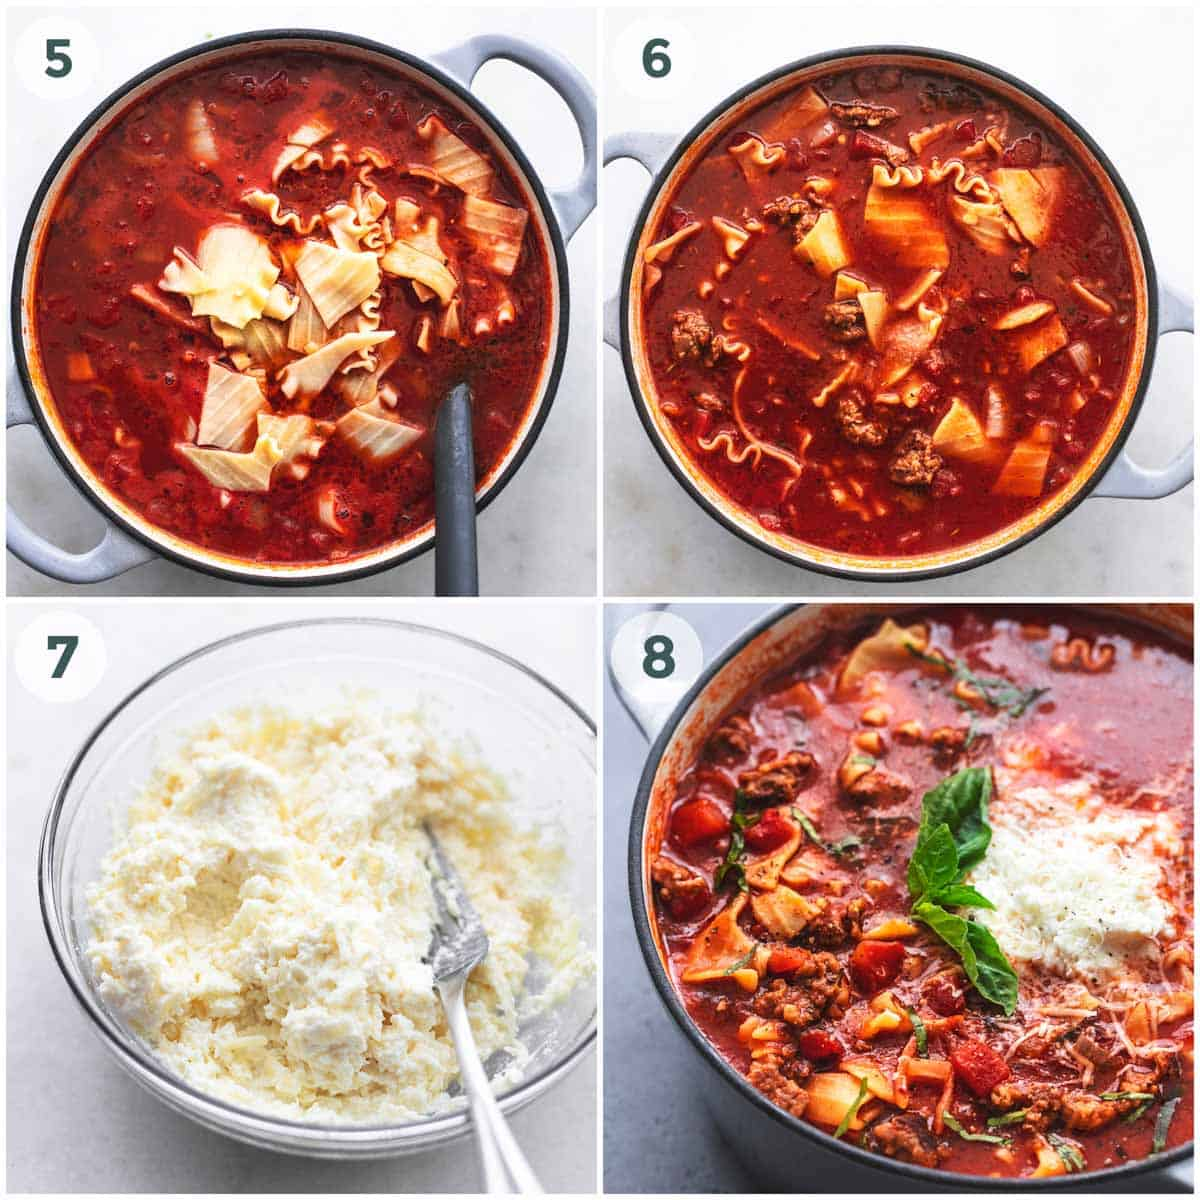 collage of four images featured preparation of lasagna soup